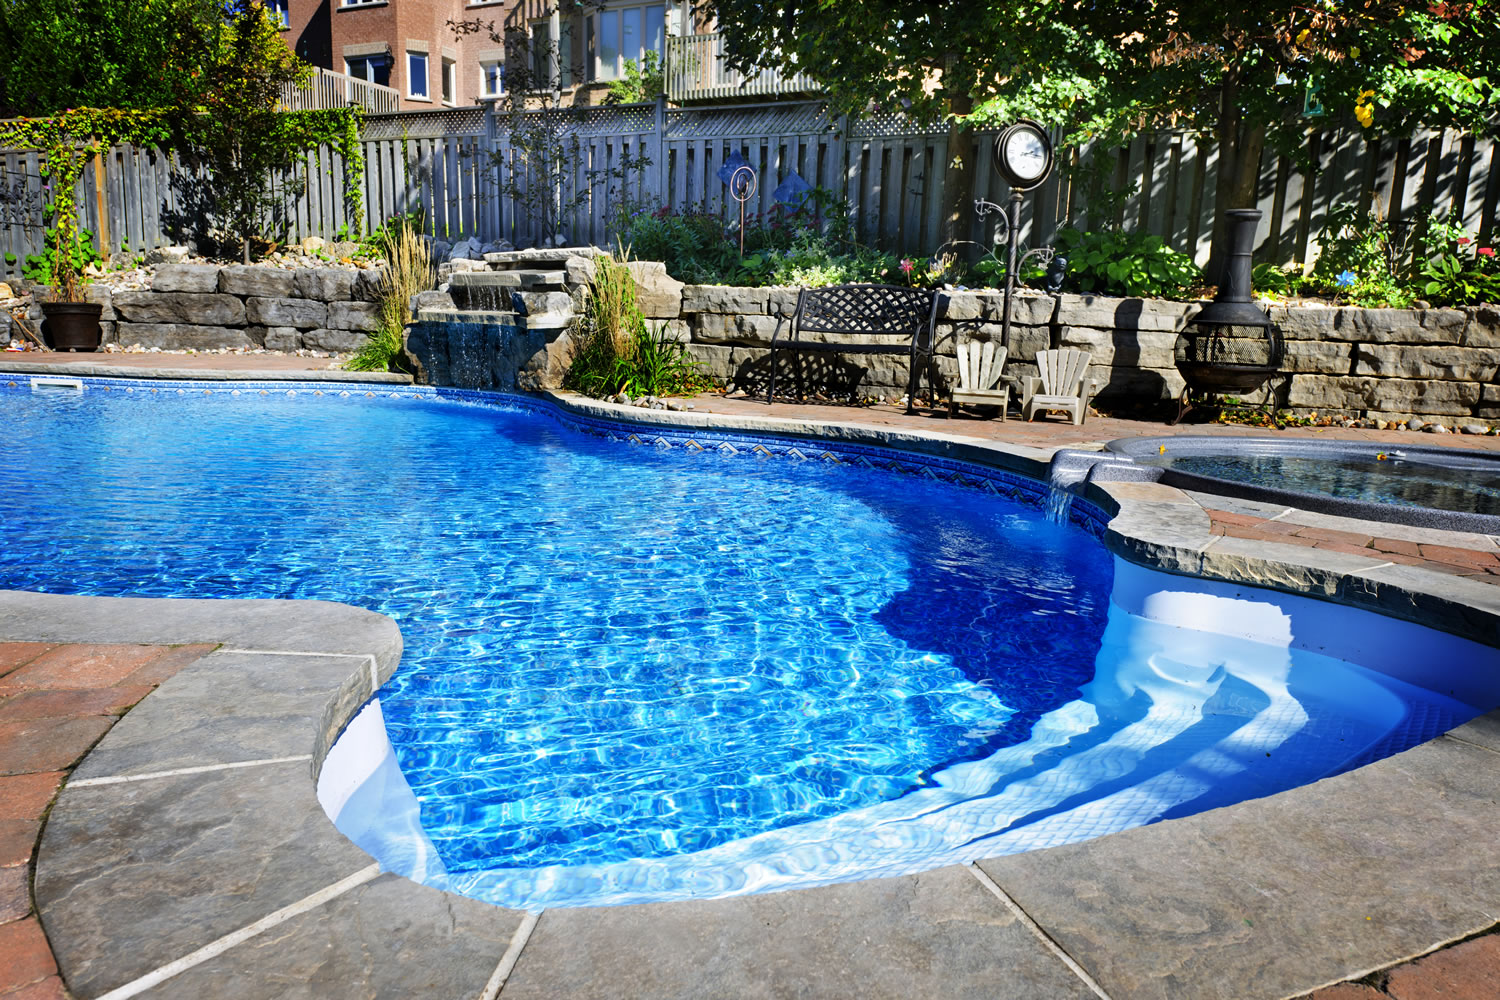 Is Buying an Inground Swimming Pool a Good Investment?